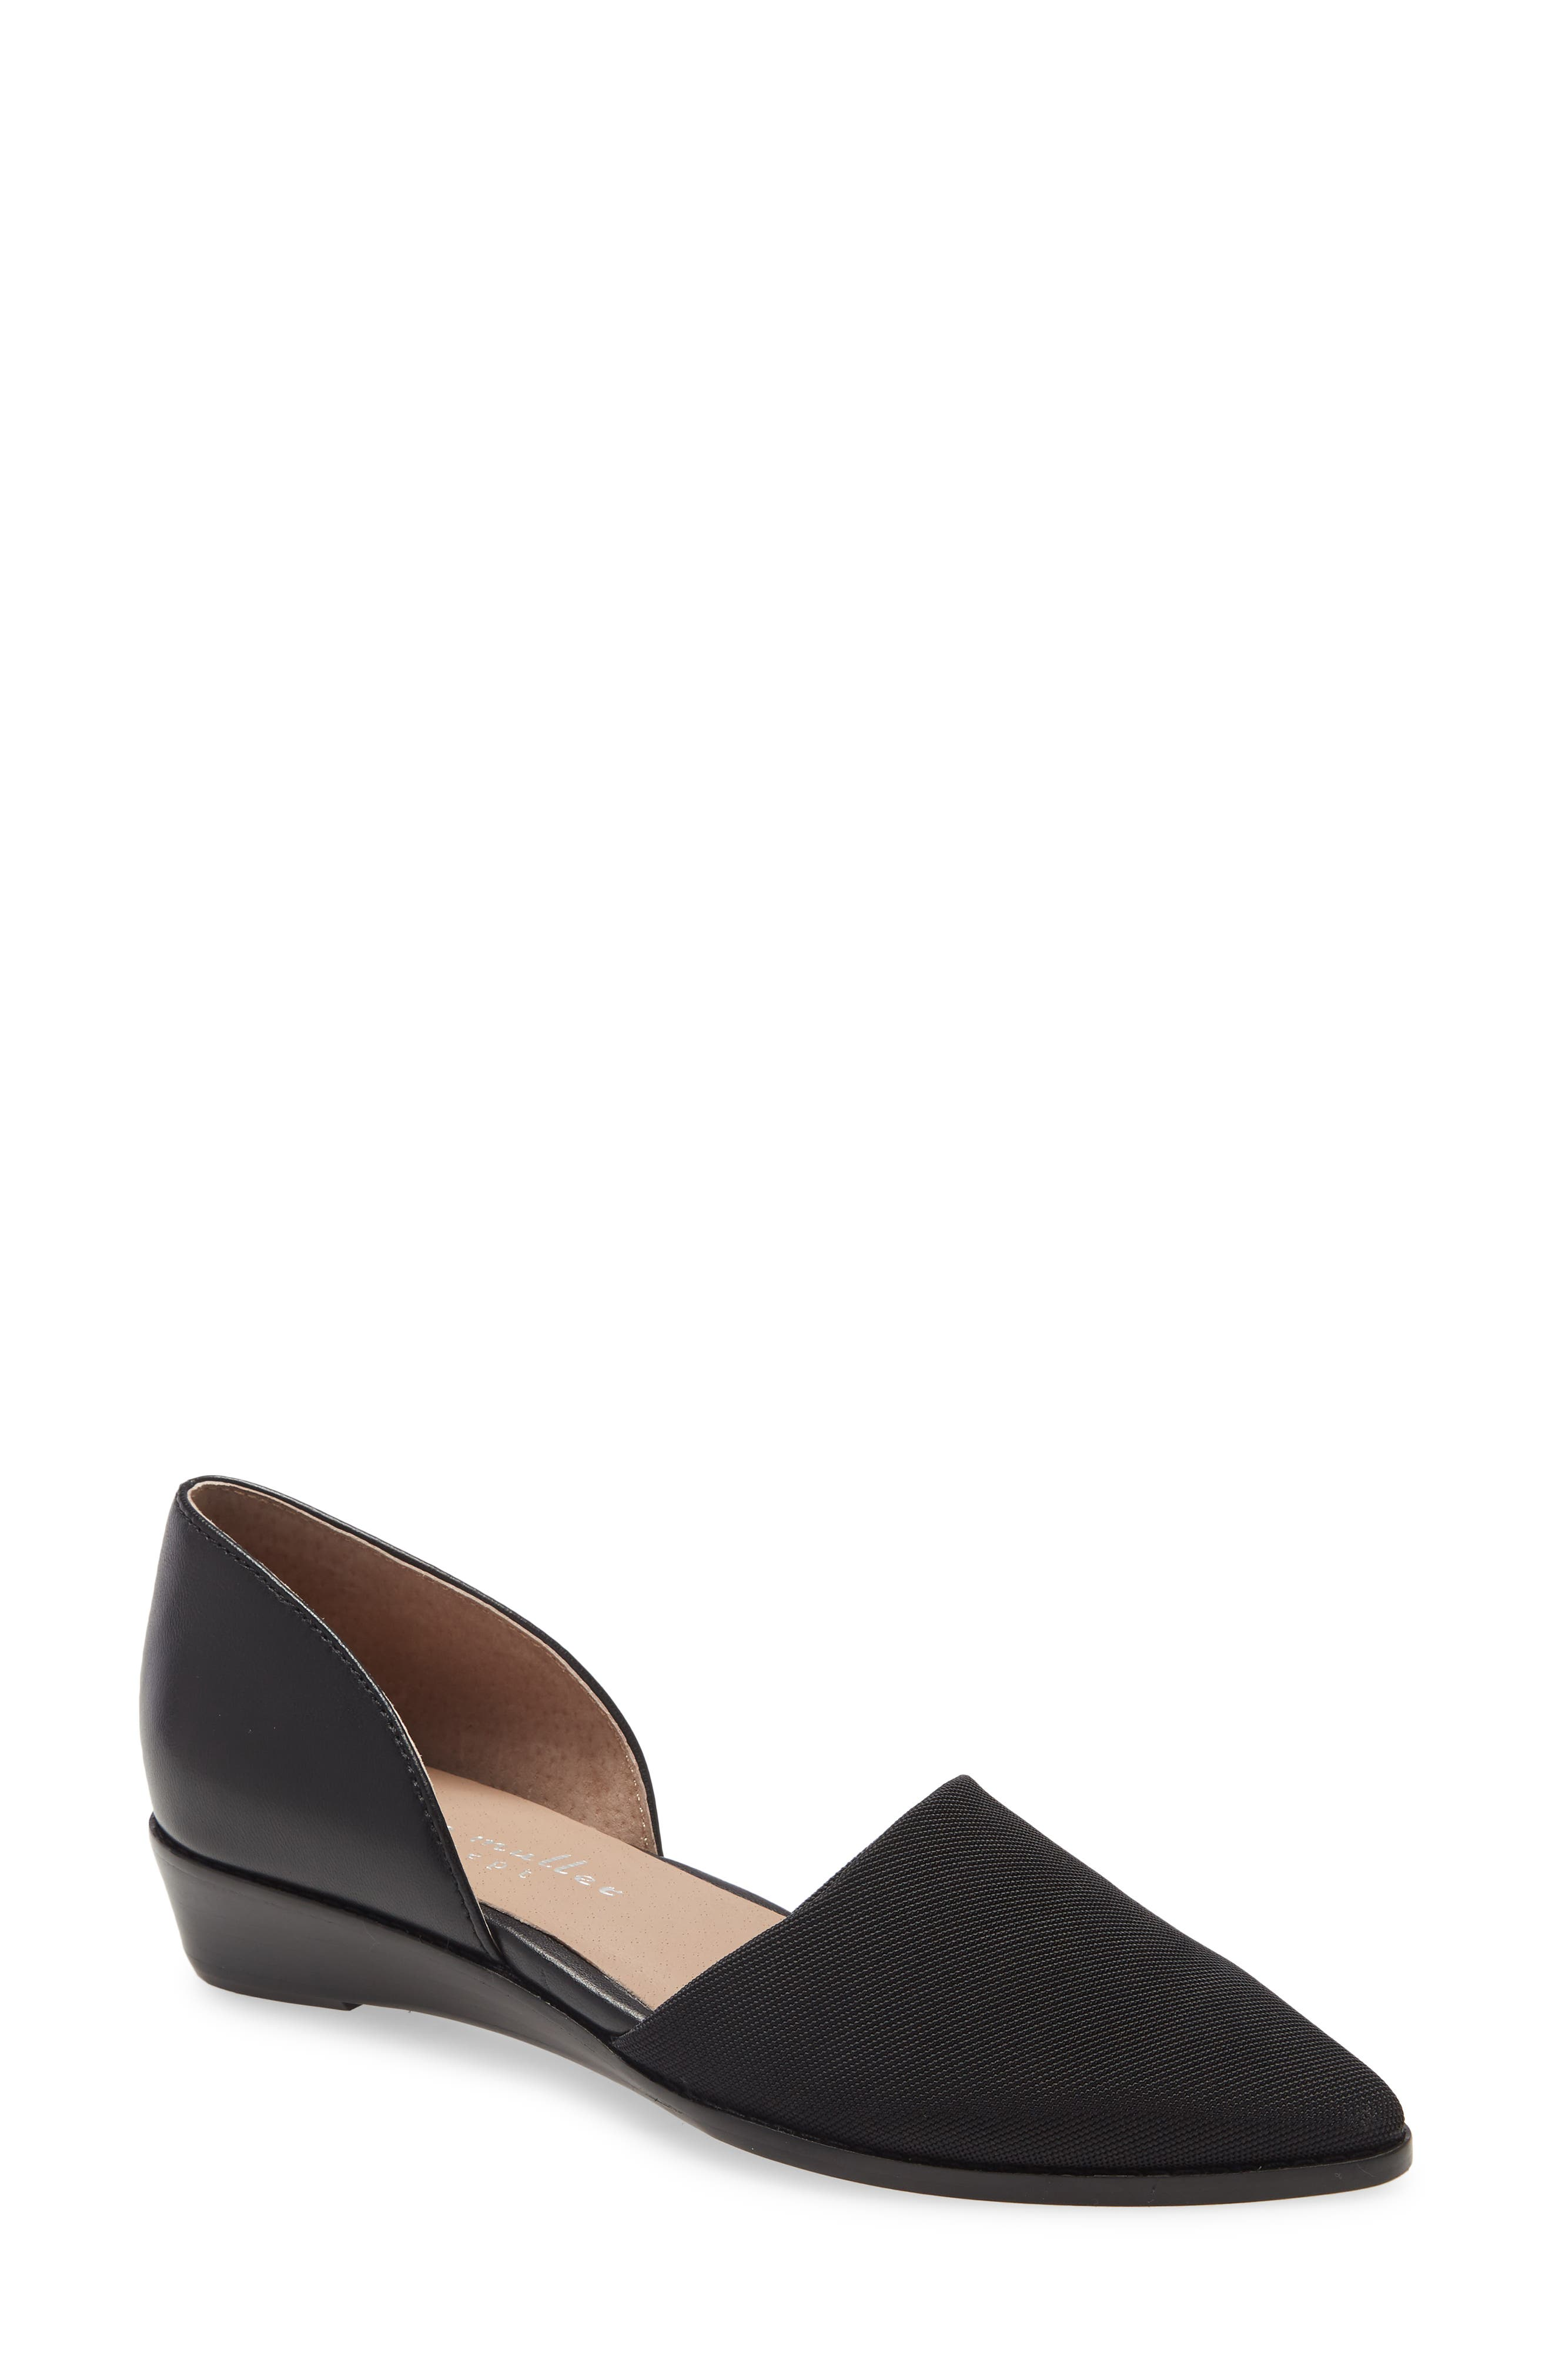 Cage D'Orsay Wedge Pump